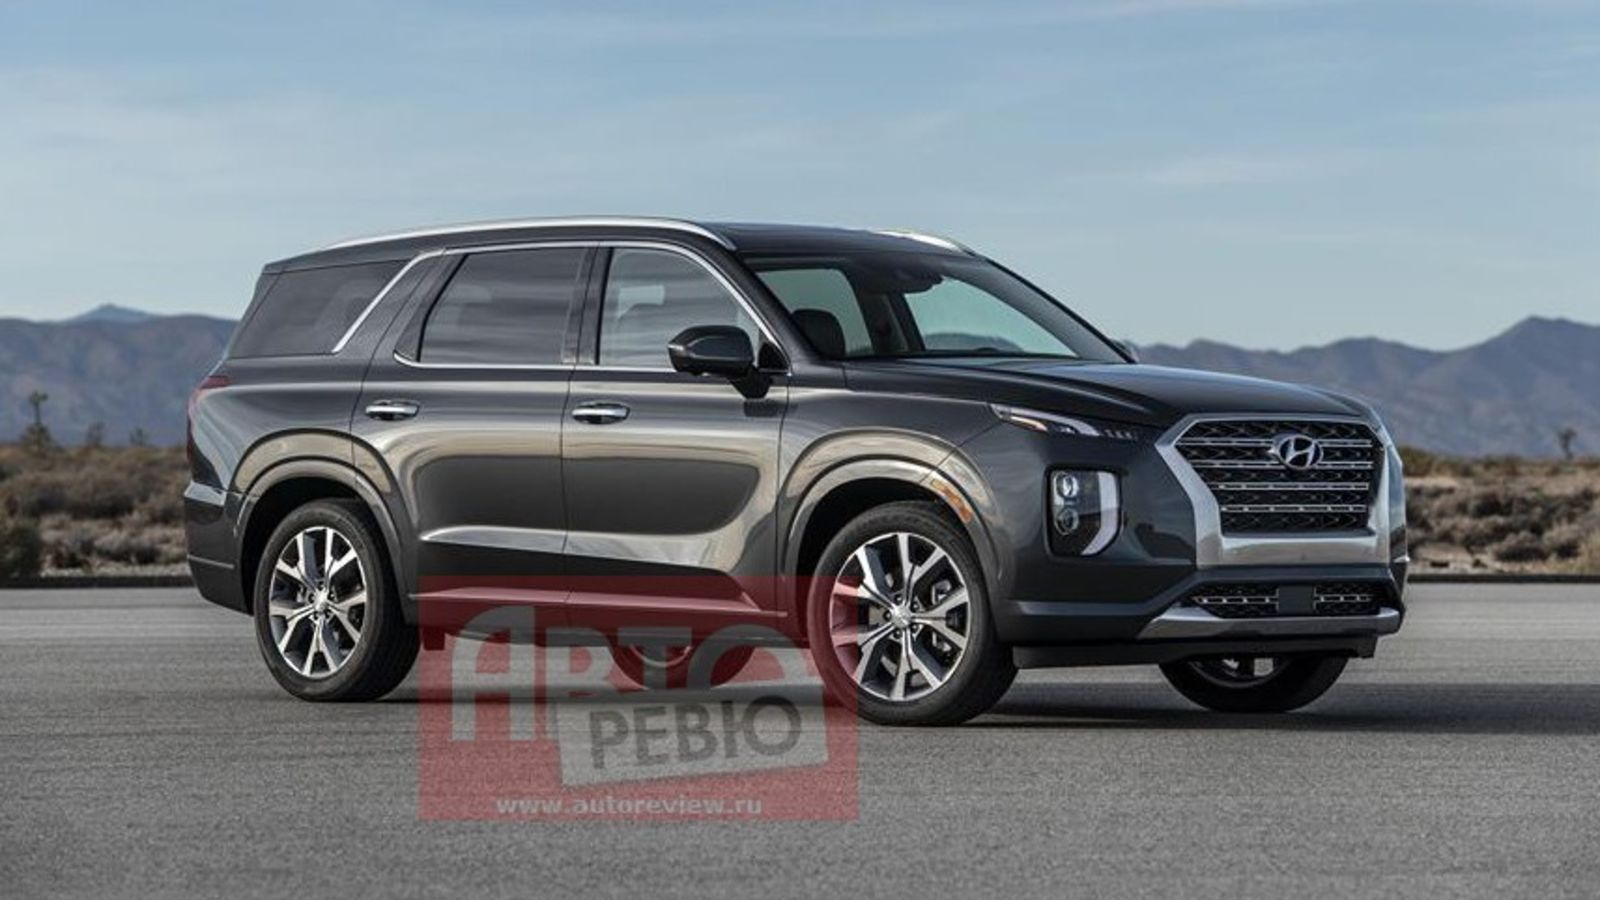 The 2020 Hyundai Palisade This Could Be The Answer To Hyundai S Suv Prayers Hyundai Suv Suv Hyundai